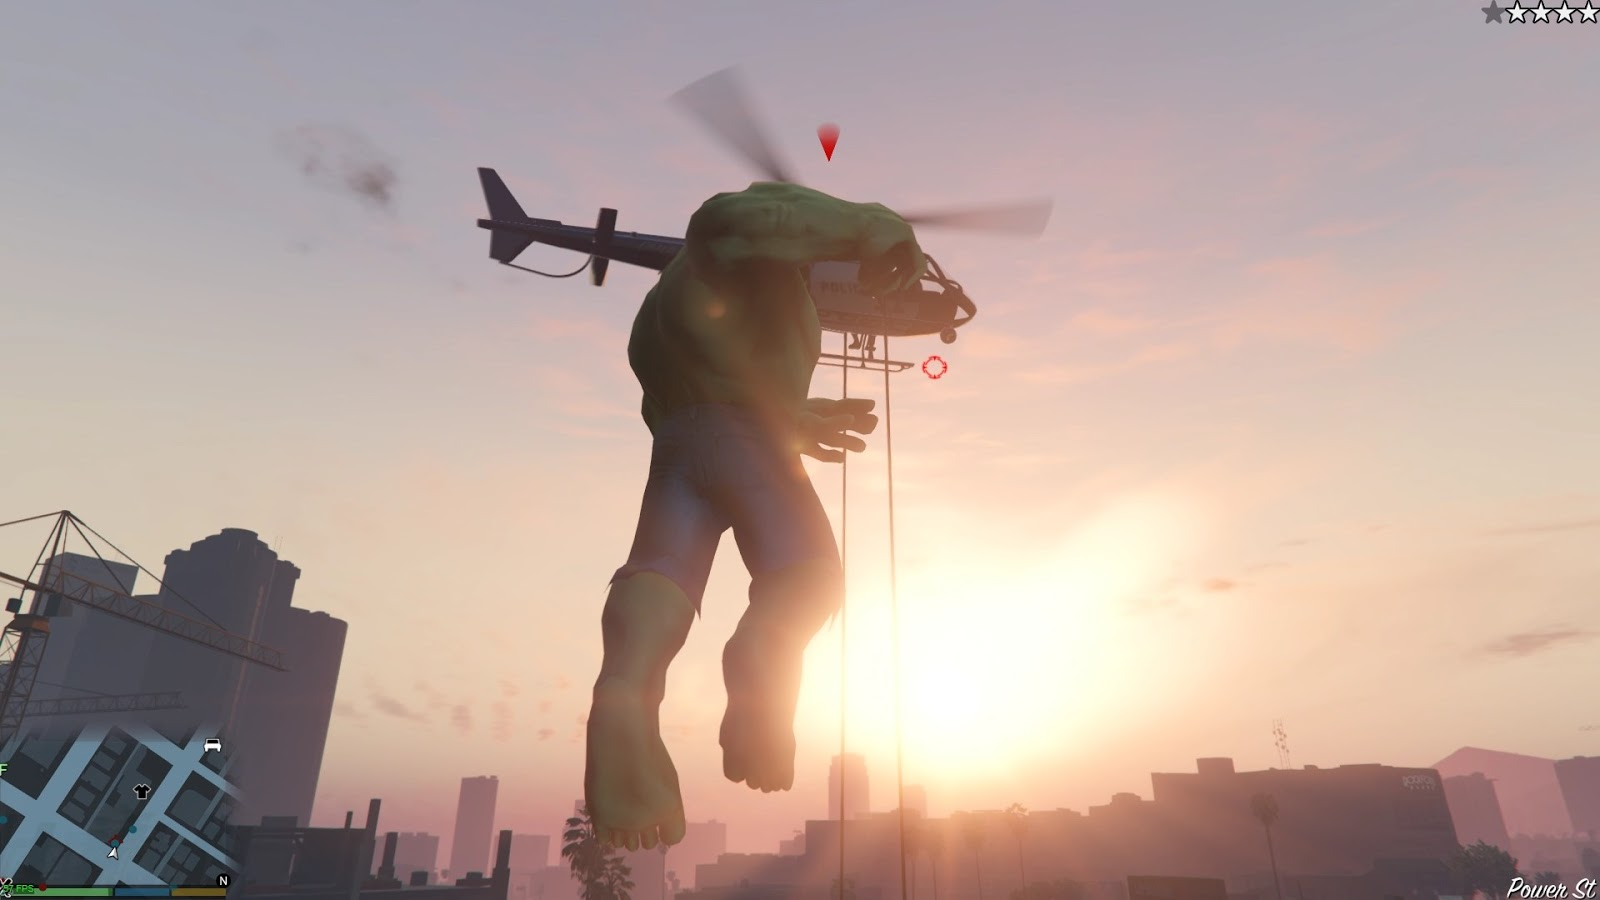 New GTA V Hulk Mod Offers Special Attacks, Wall Climb, Auto